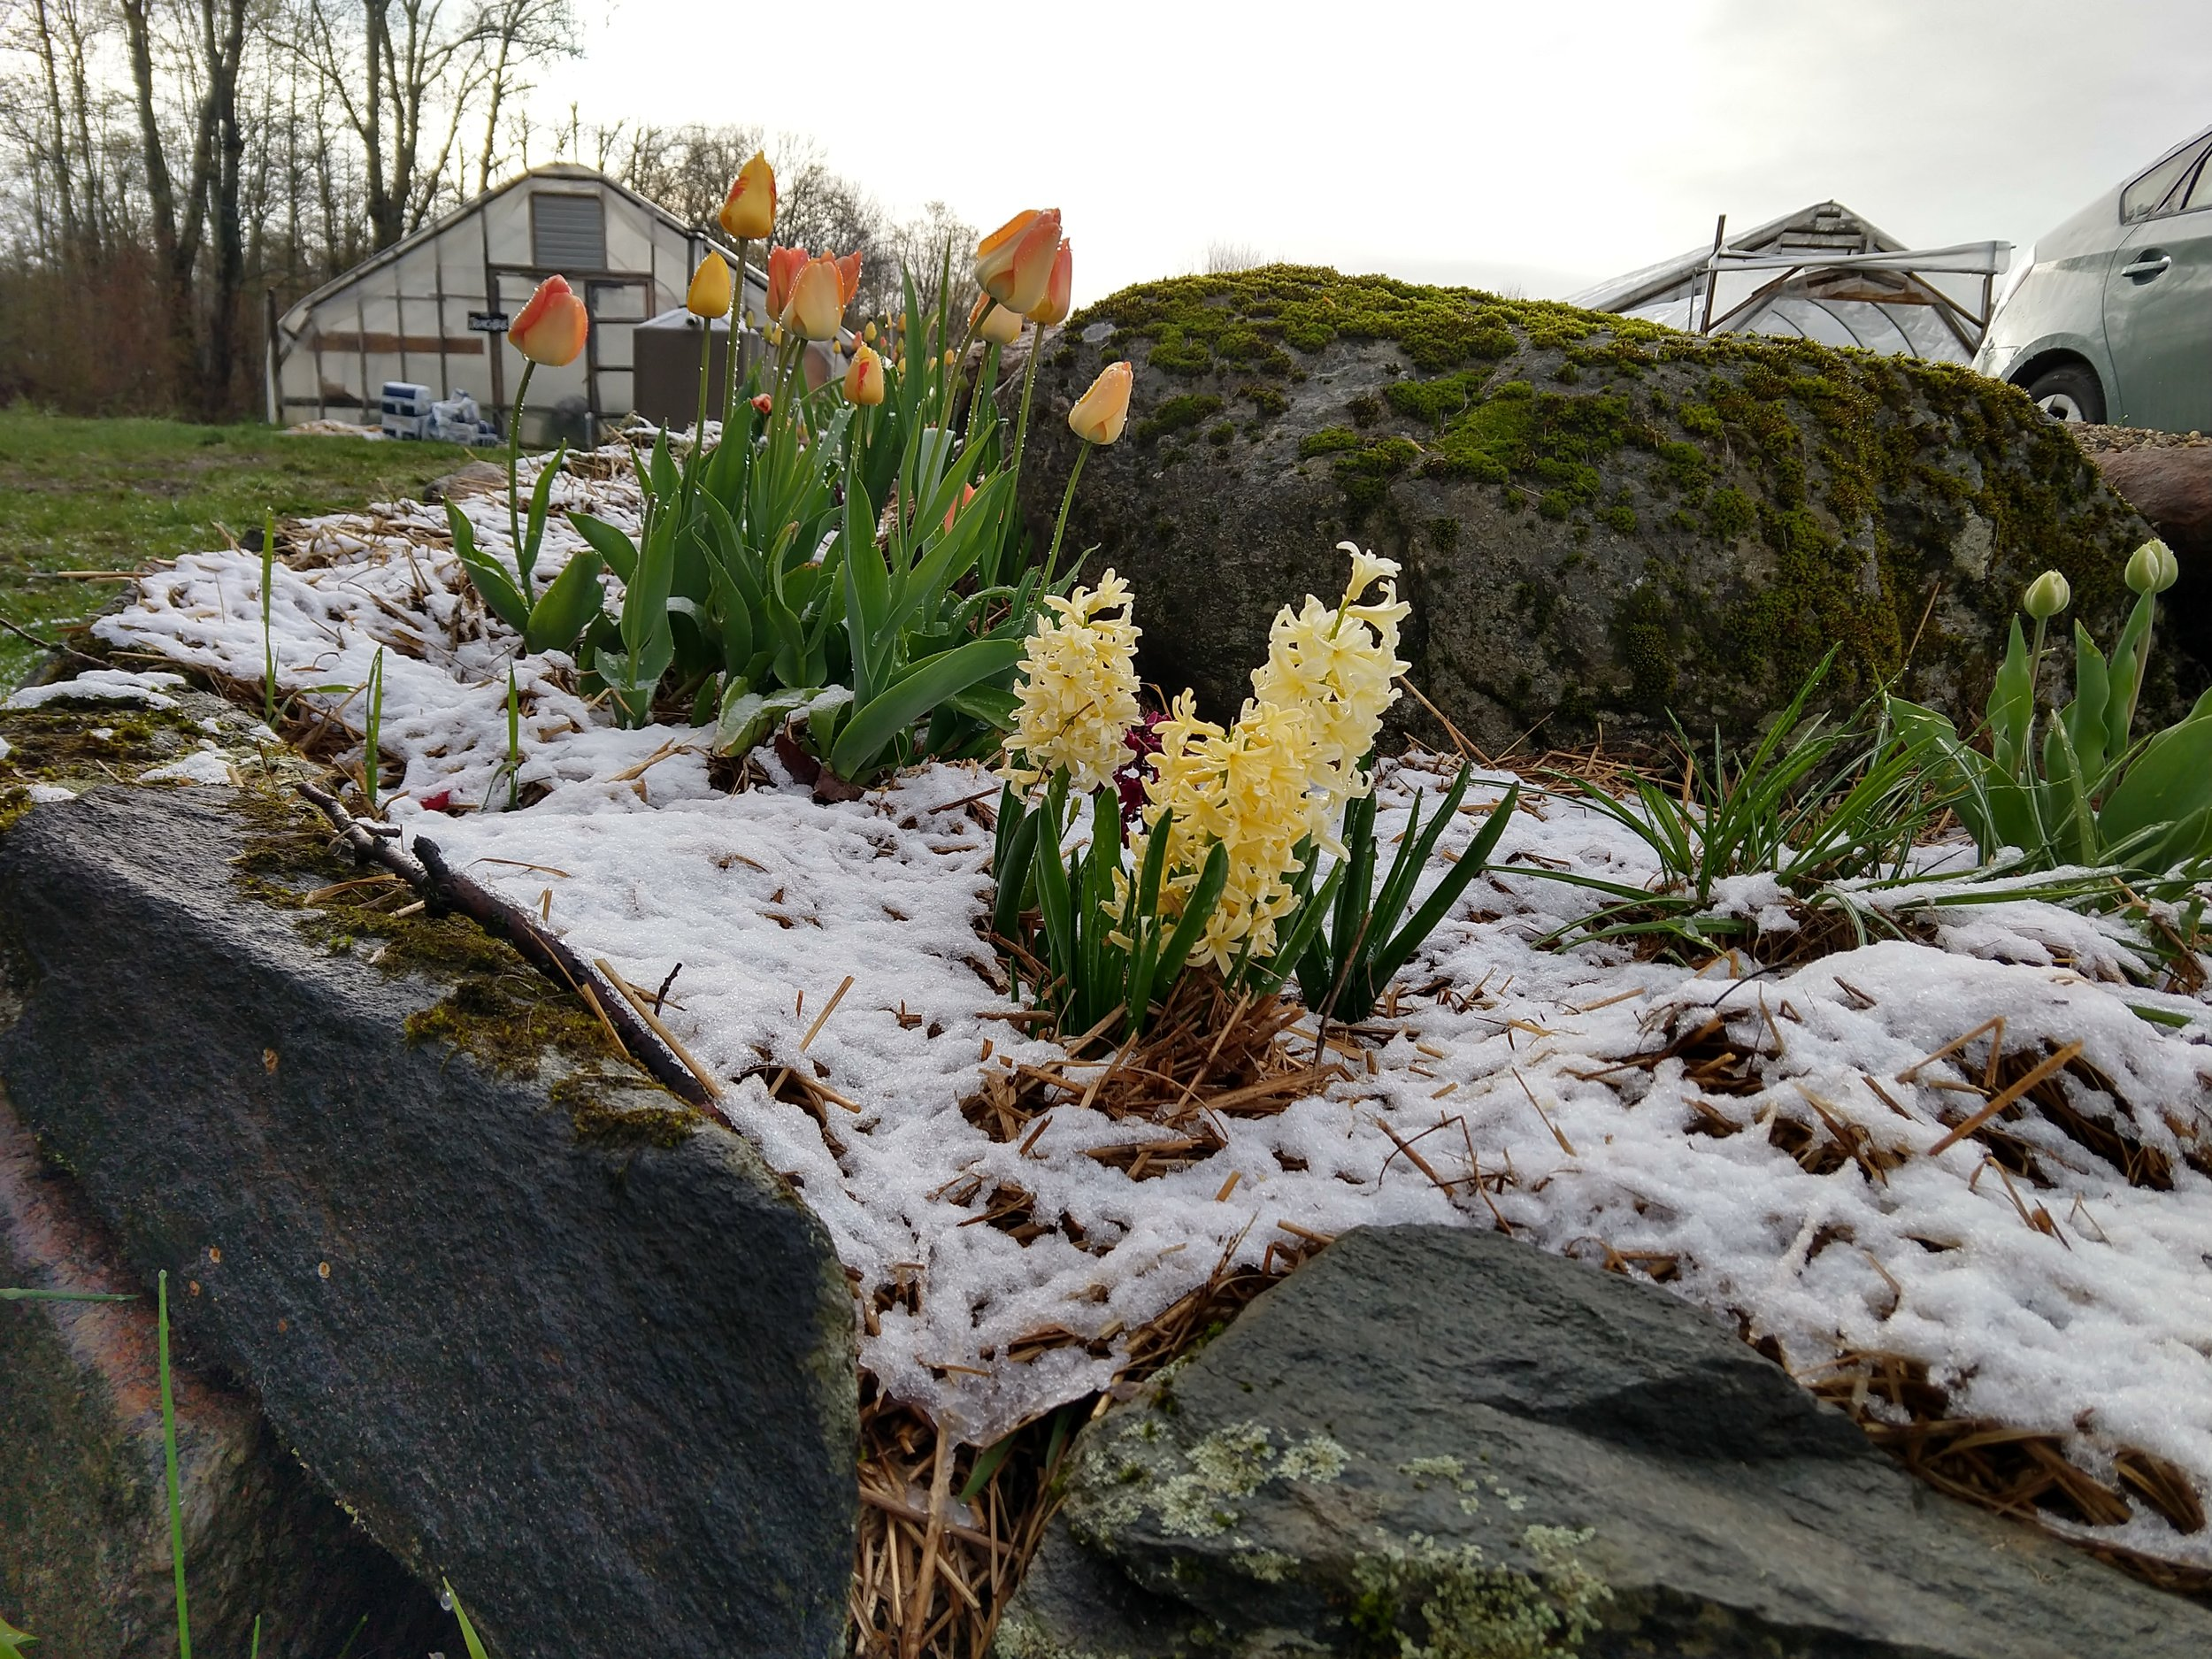 the snow stuck around longest on the flower bed mulch….